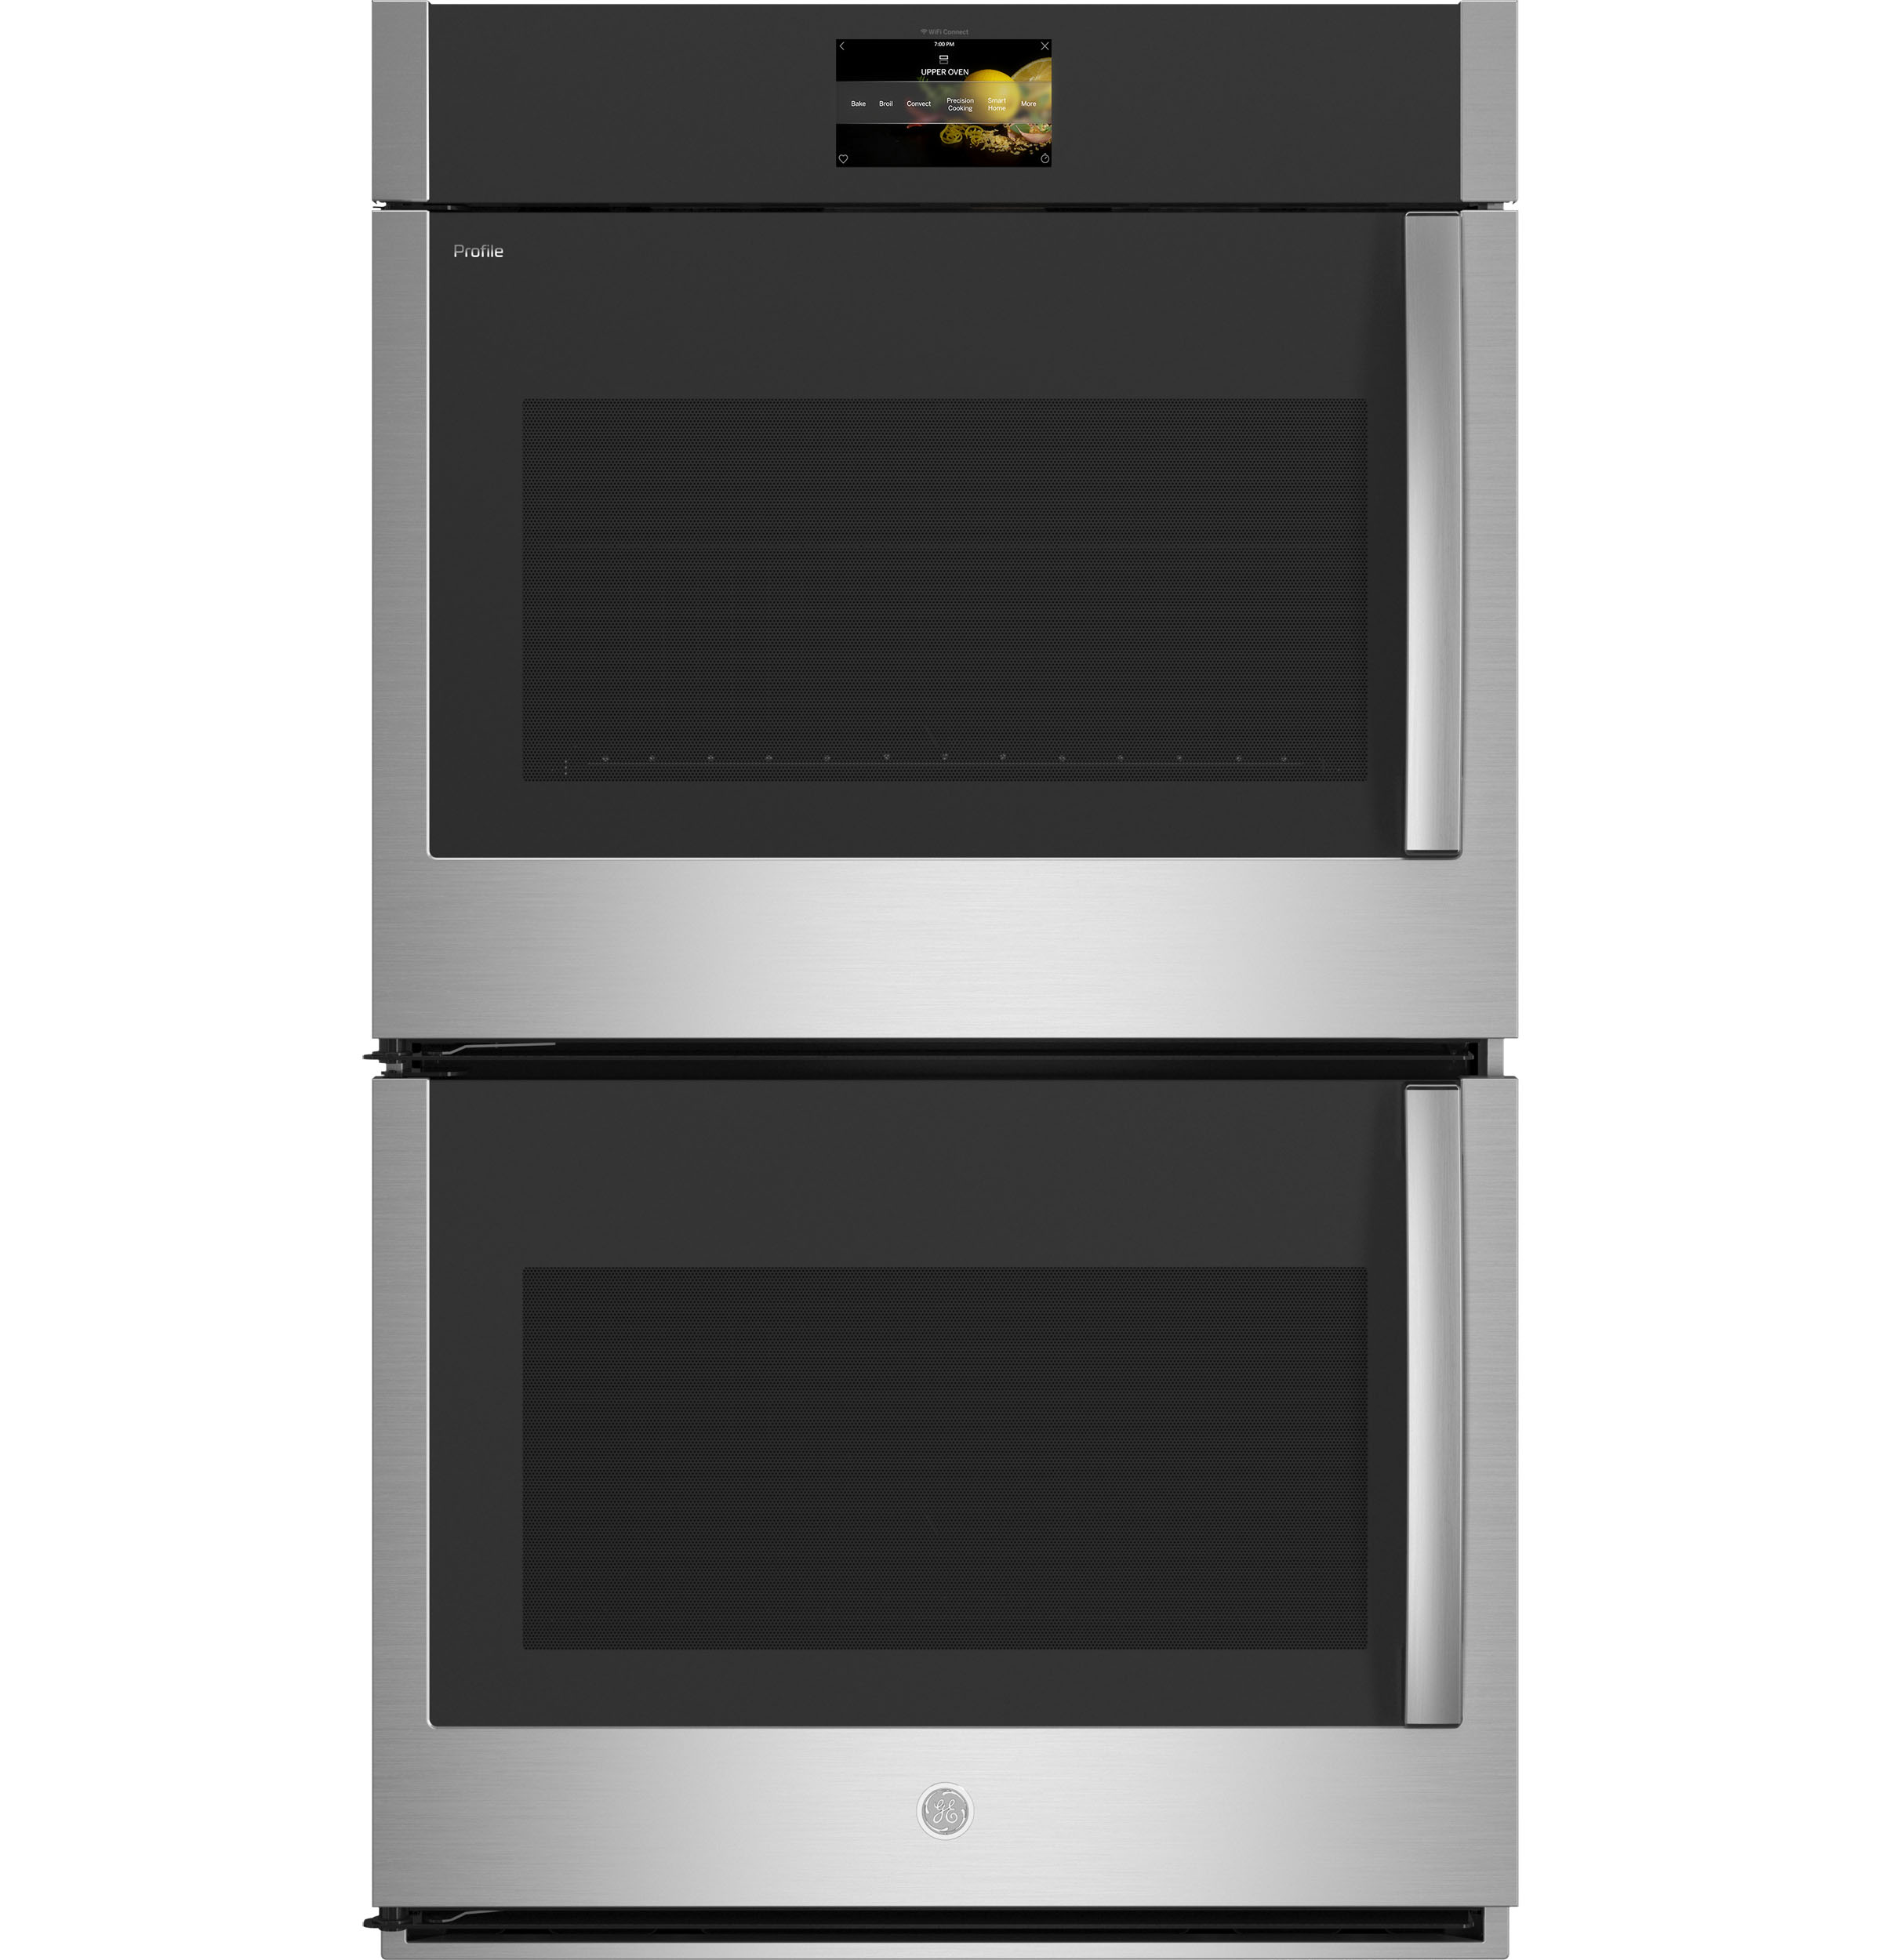 "GE Profile GE Profile™ 30"" Smart Built-In Convection Double Wall Oven with Left-Hand Side-Swing Doors"